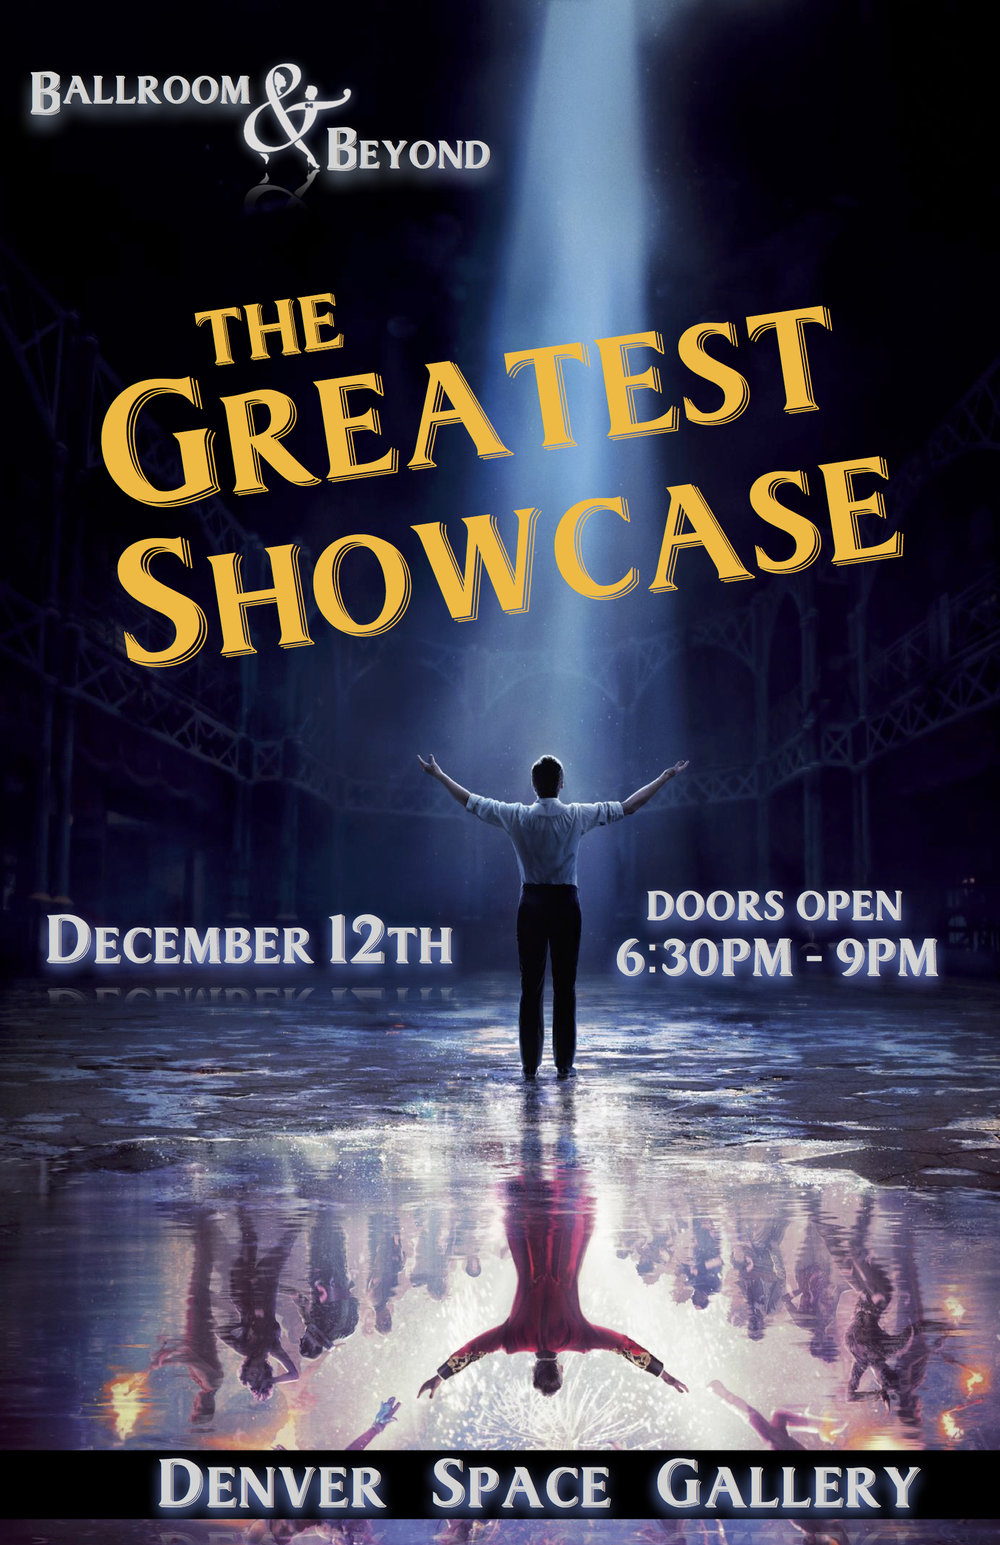 The Greatest Showcase - A Spectacle of Dance